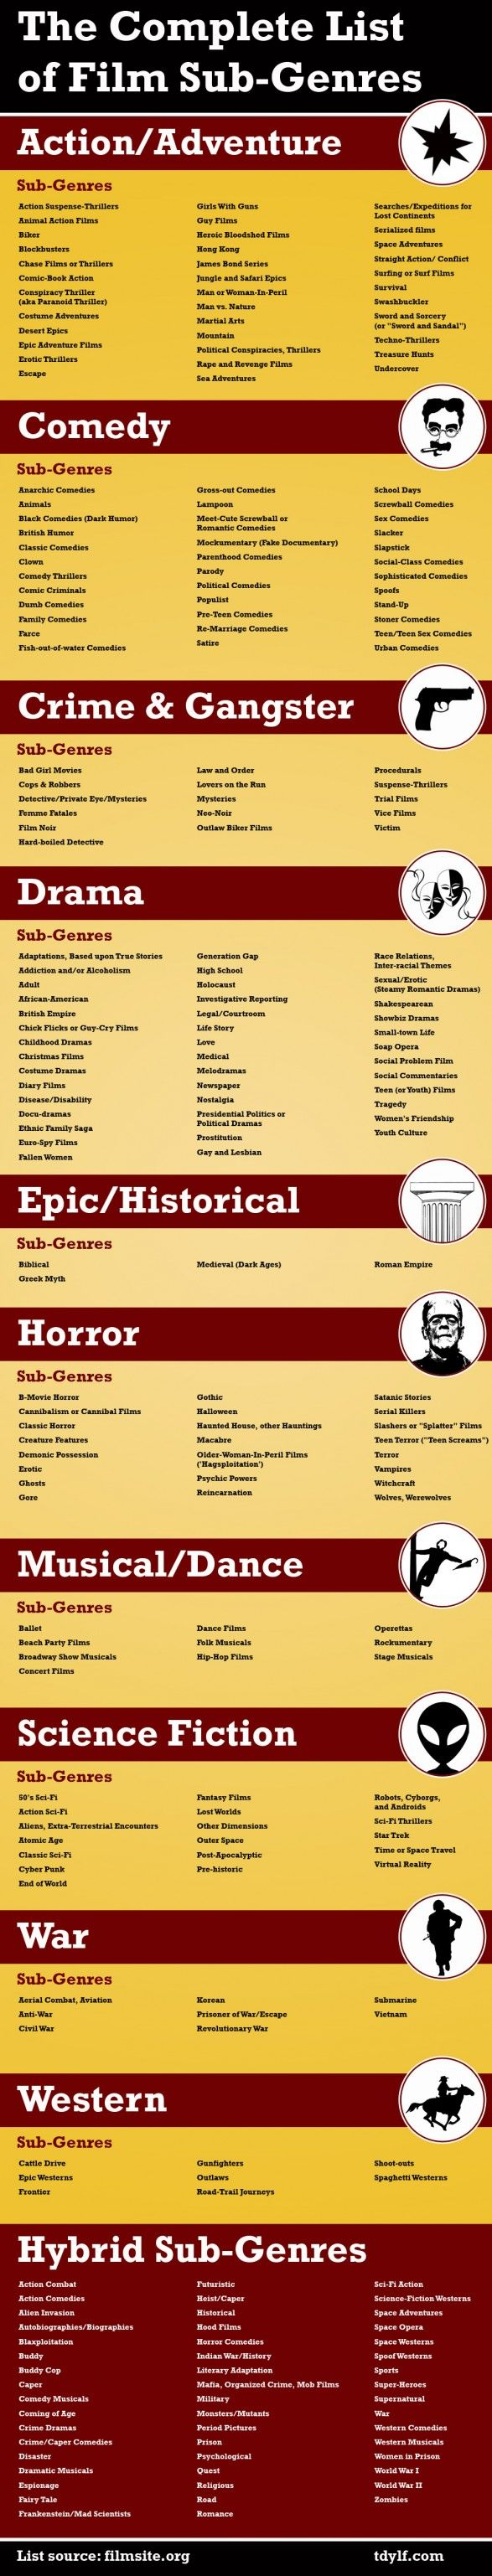 The Complete List of Film Sub-Genres #infographic #movies ...